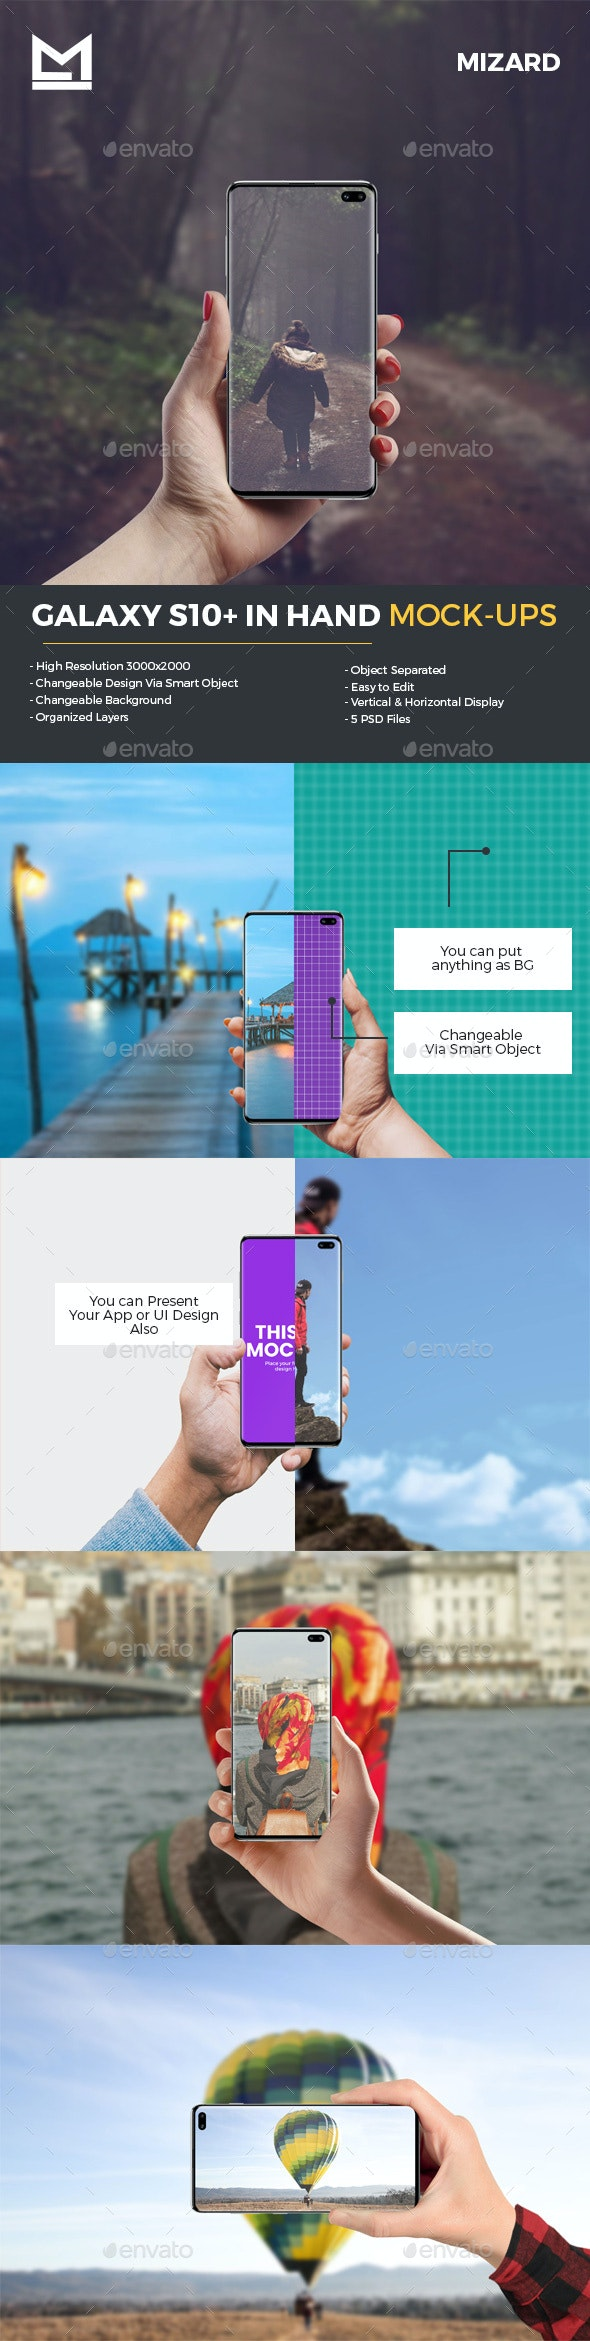 Galaxy S10+ in Hand Mockups - Mobile Displays